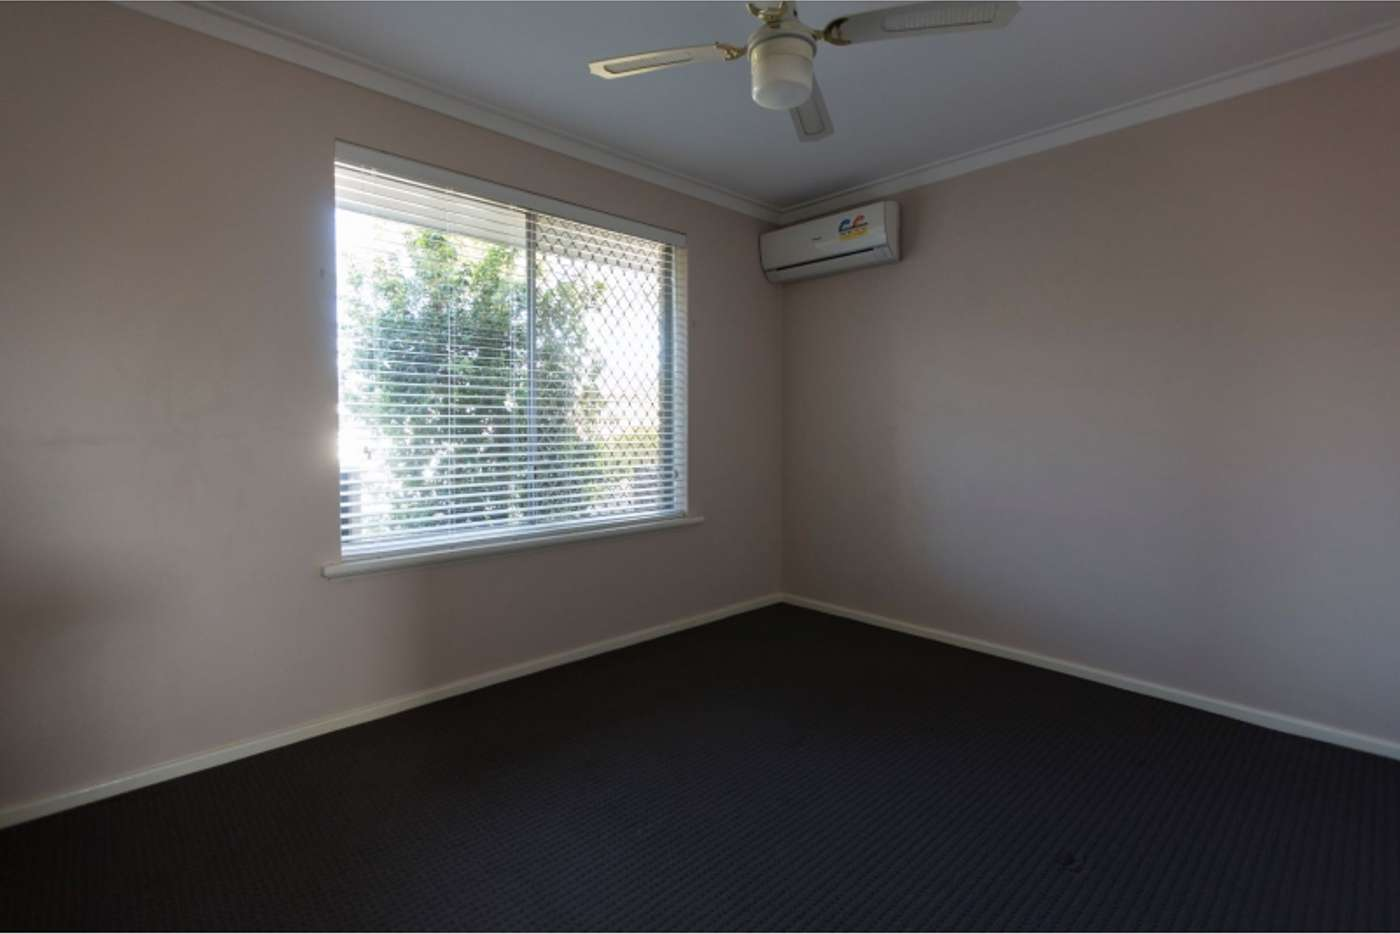 Sixth view of Homely villa listing, 11/87 Barbican Street East, Shelley WA 6148